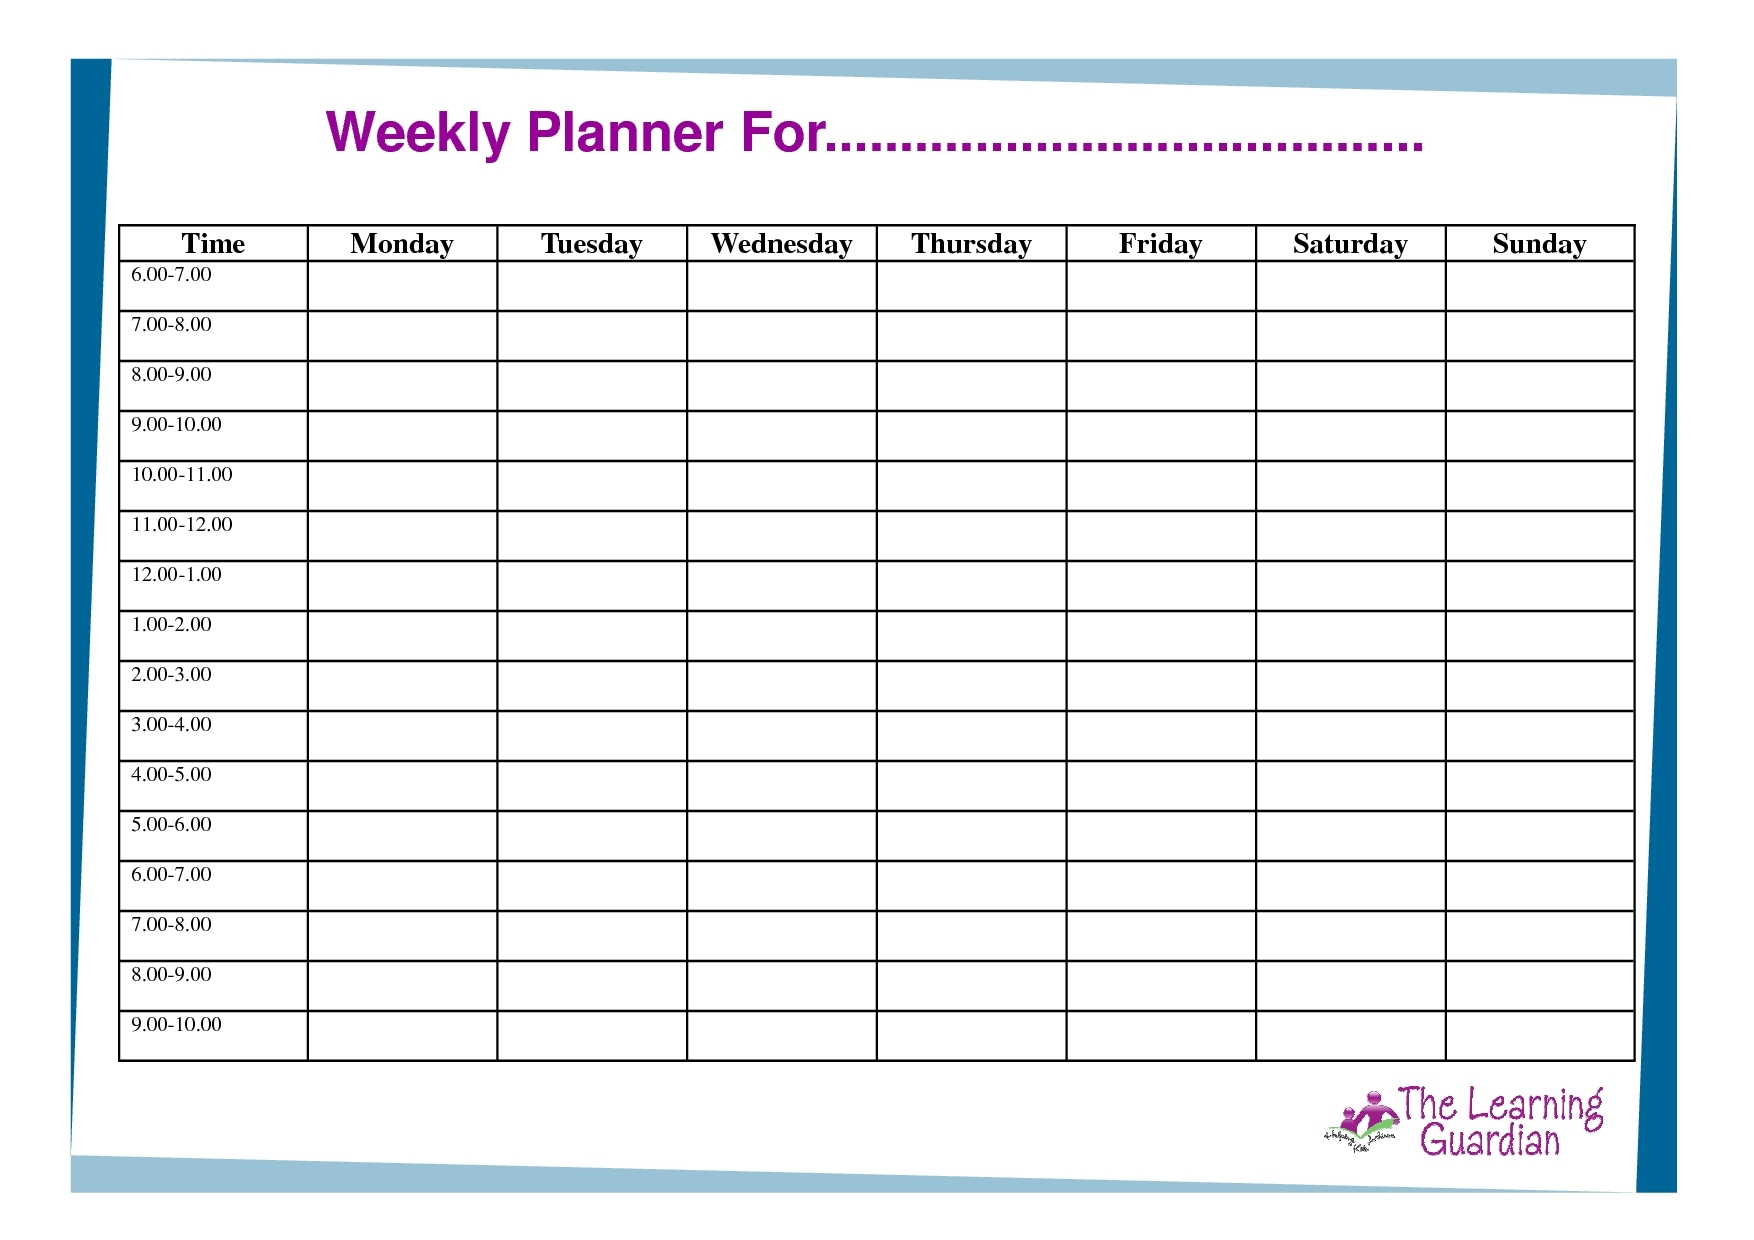 Printable Weekly Planner With Time Slots - Calendar